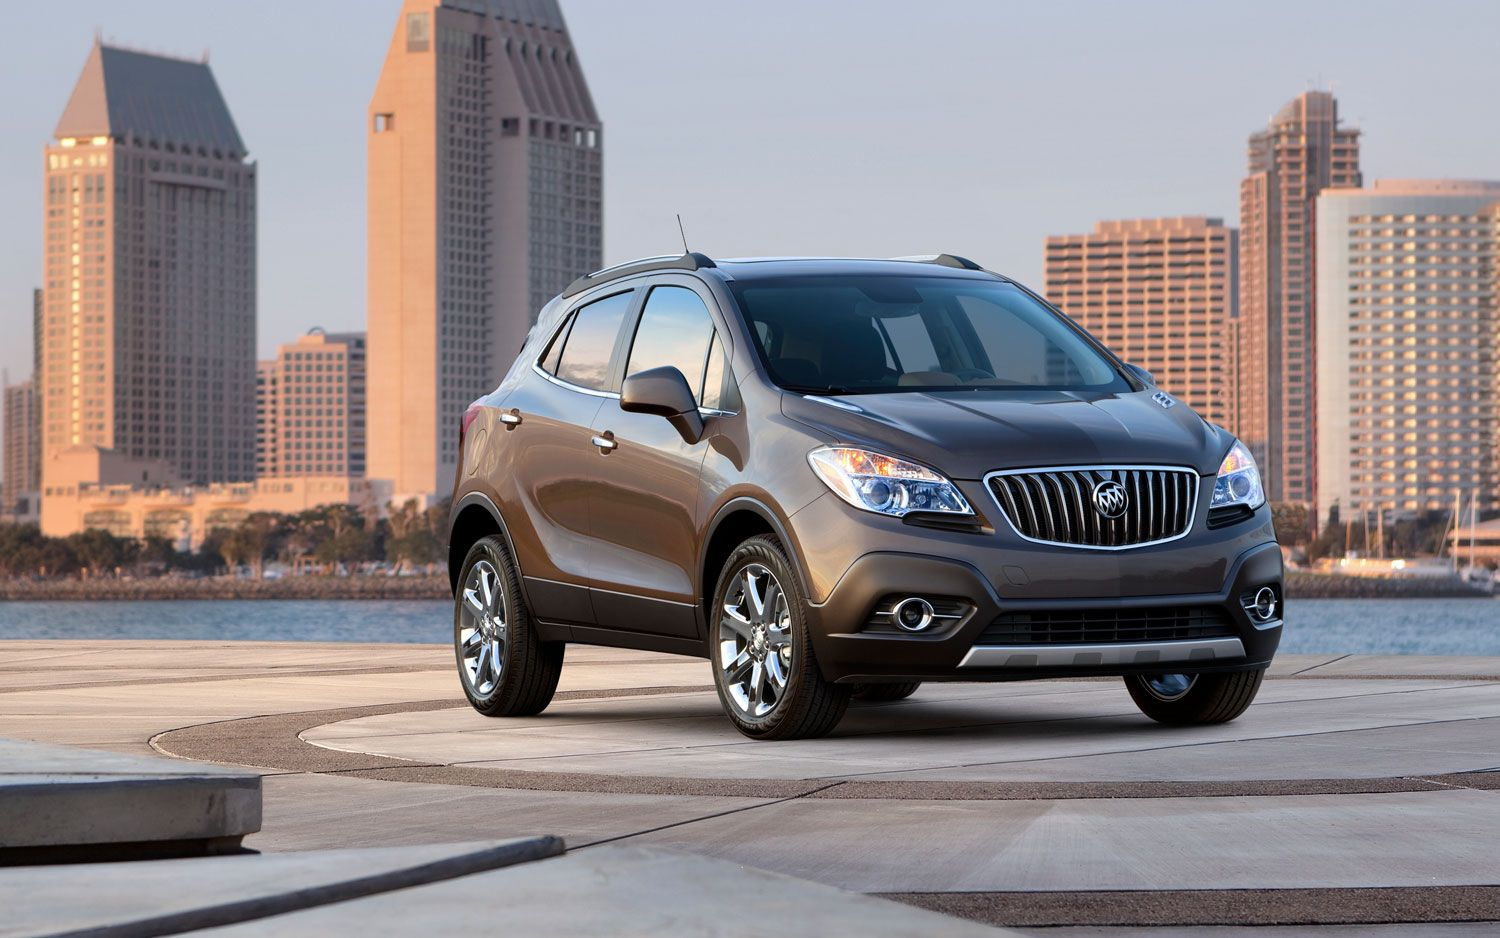 Priced 2013 Buick Encore Starts at 24,950 Buick cars